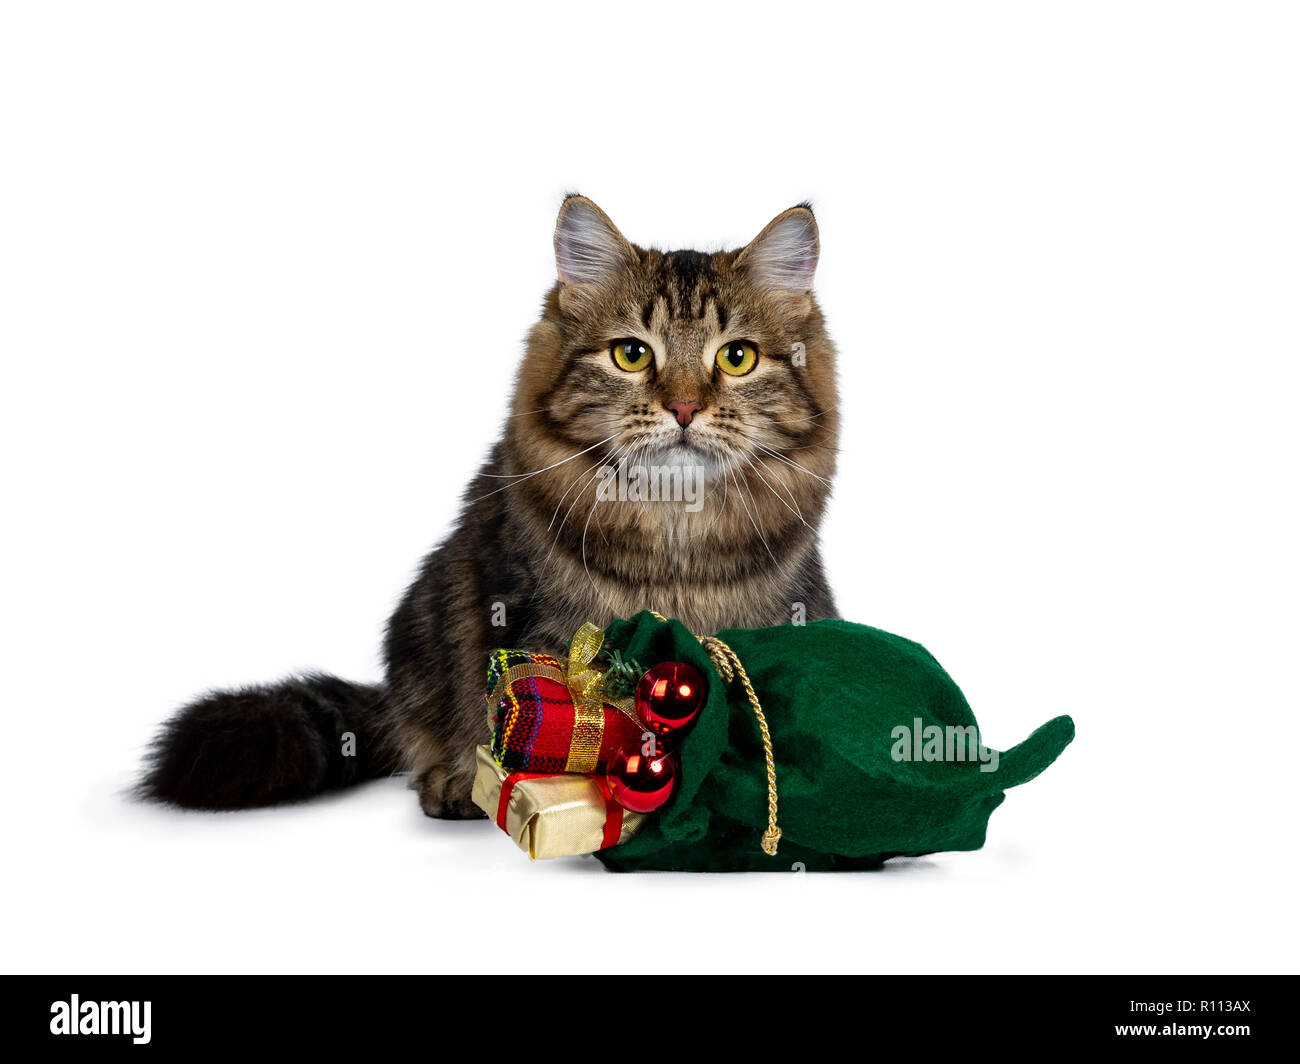 Cute black tabby Siberian cat kitten sitting up behind a green christmas bag filled with presents and red balls, looking straight ahead with bright ye Stock Photo